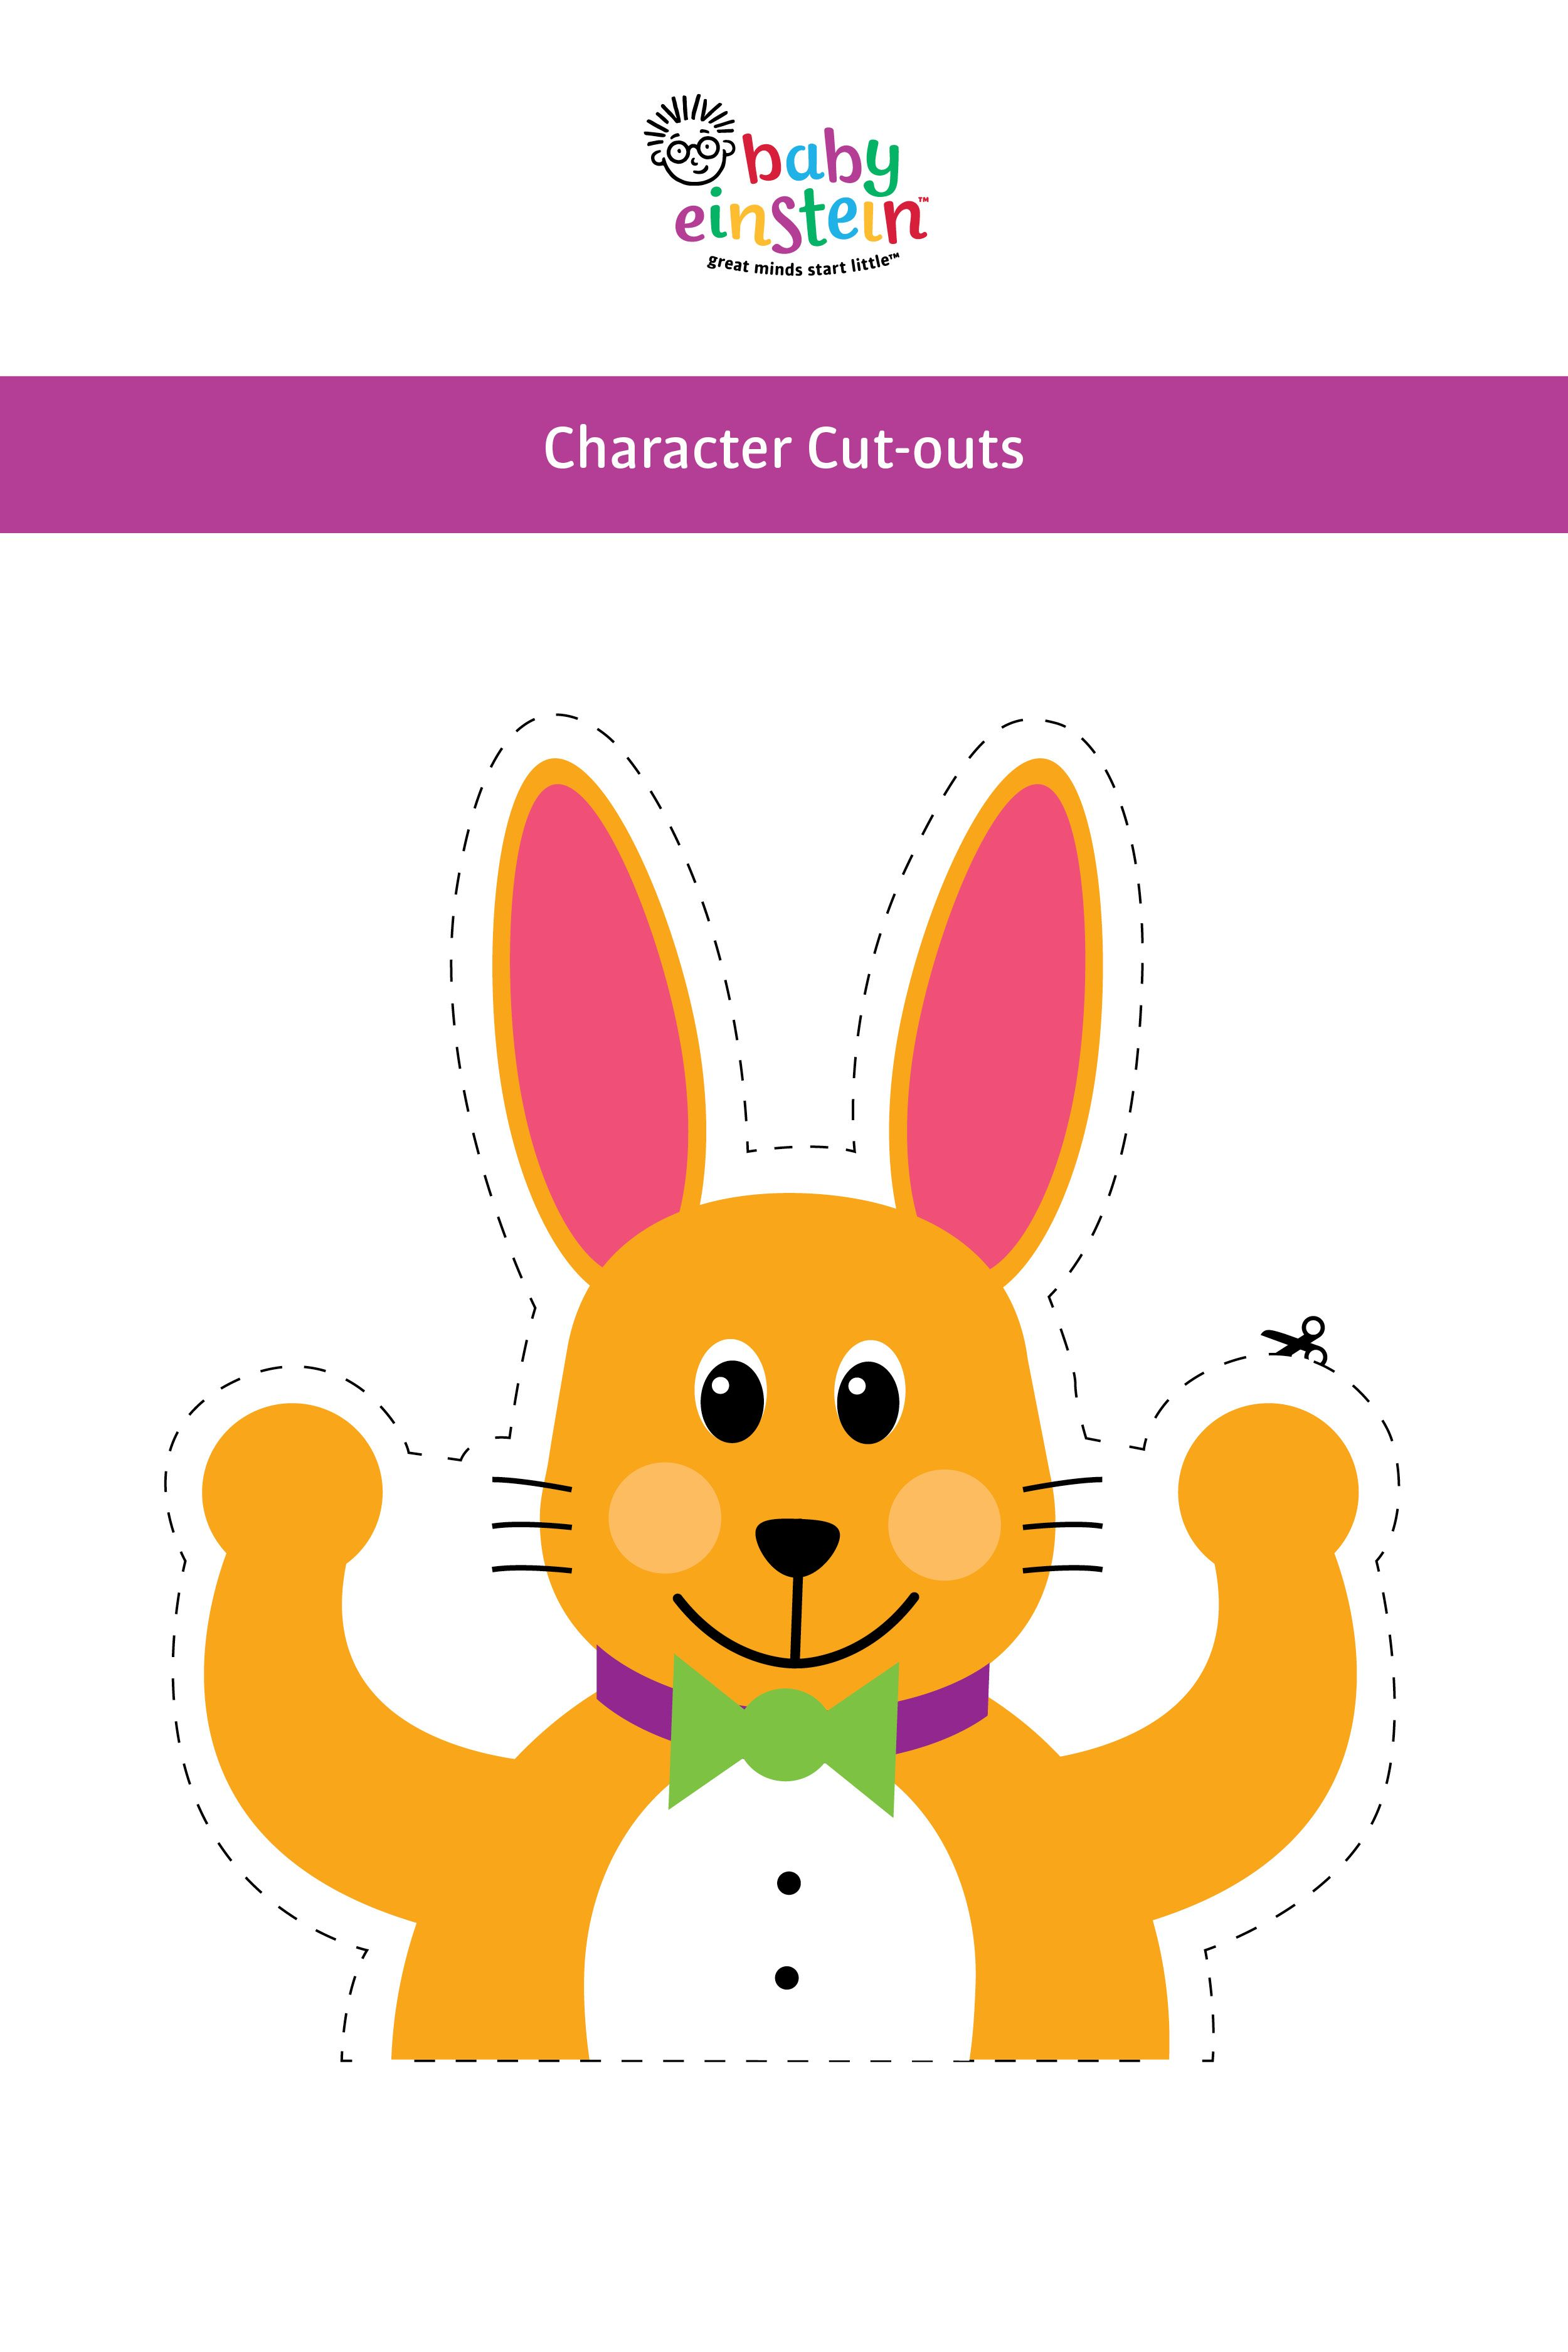 FREE Baby Einstein Character Cut Outs Use Them To Make Adorable Themed Goodie Bags For Your Guests Decorate Walls Balloons Or As Photo Props